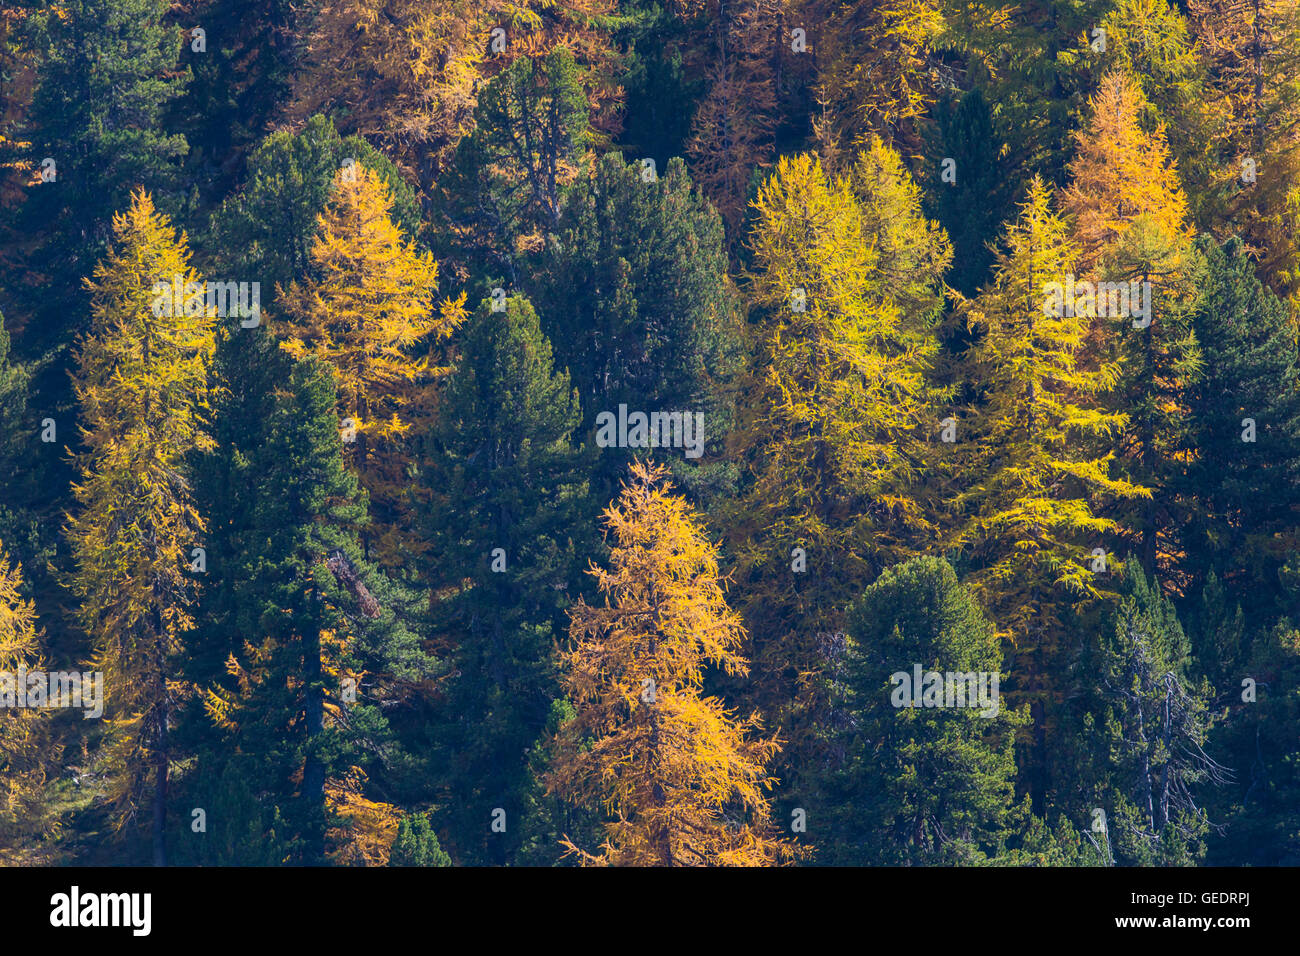 Forest of spruces in autumn - Stock Image